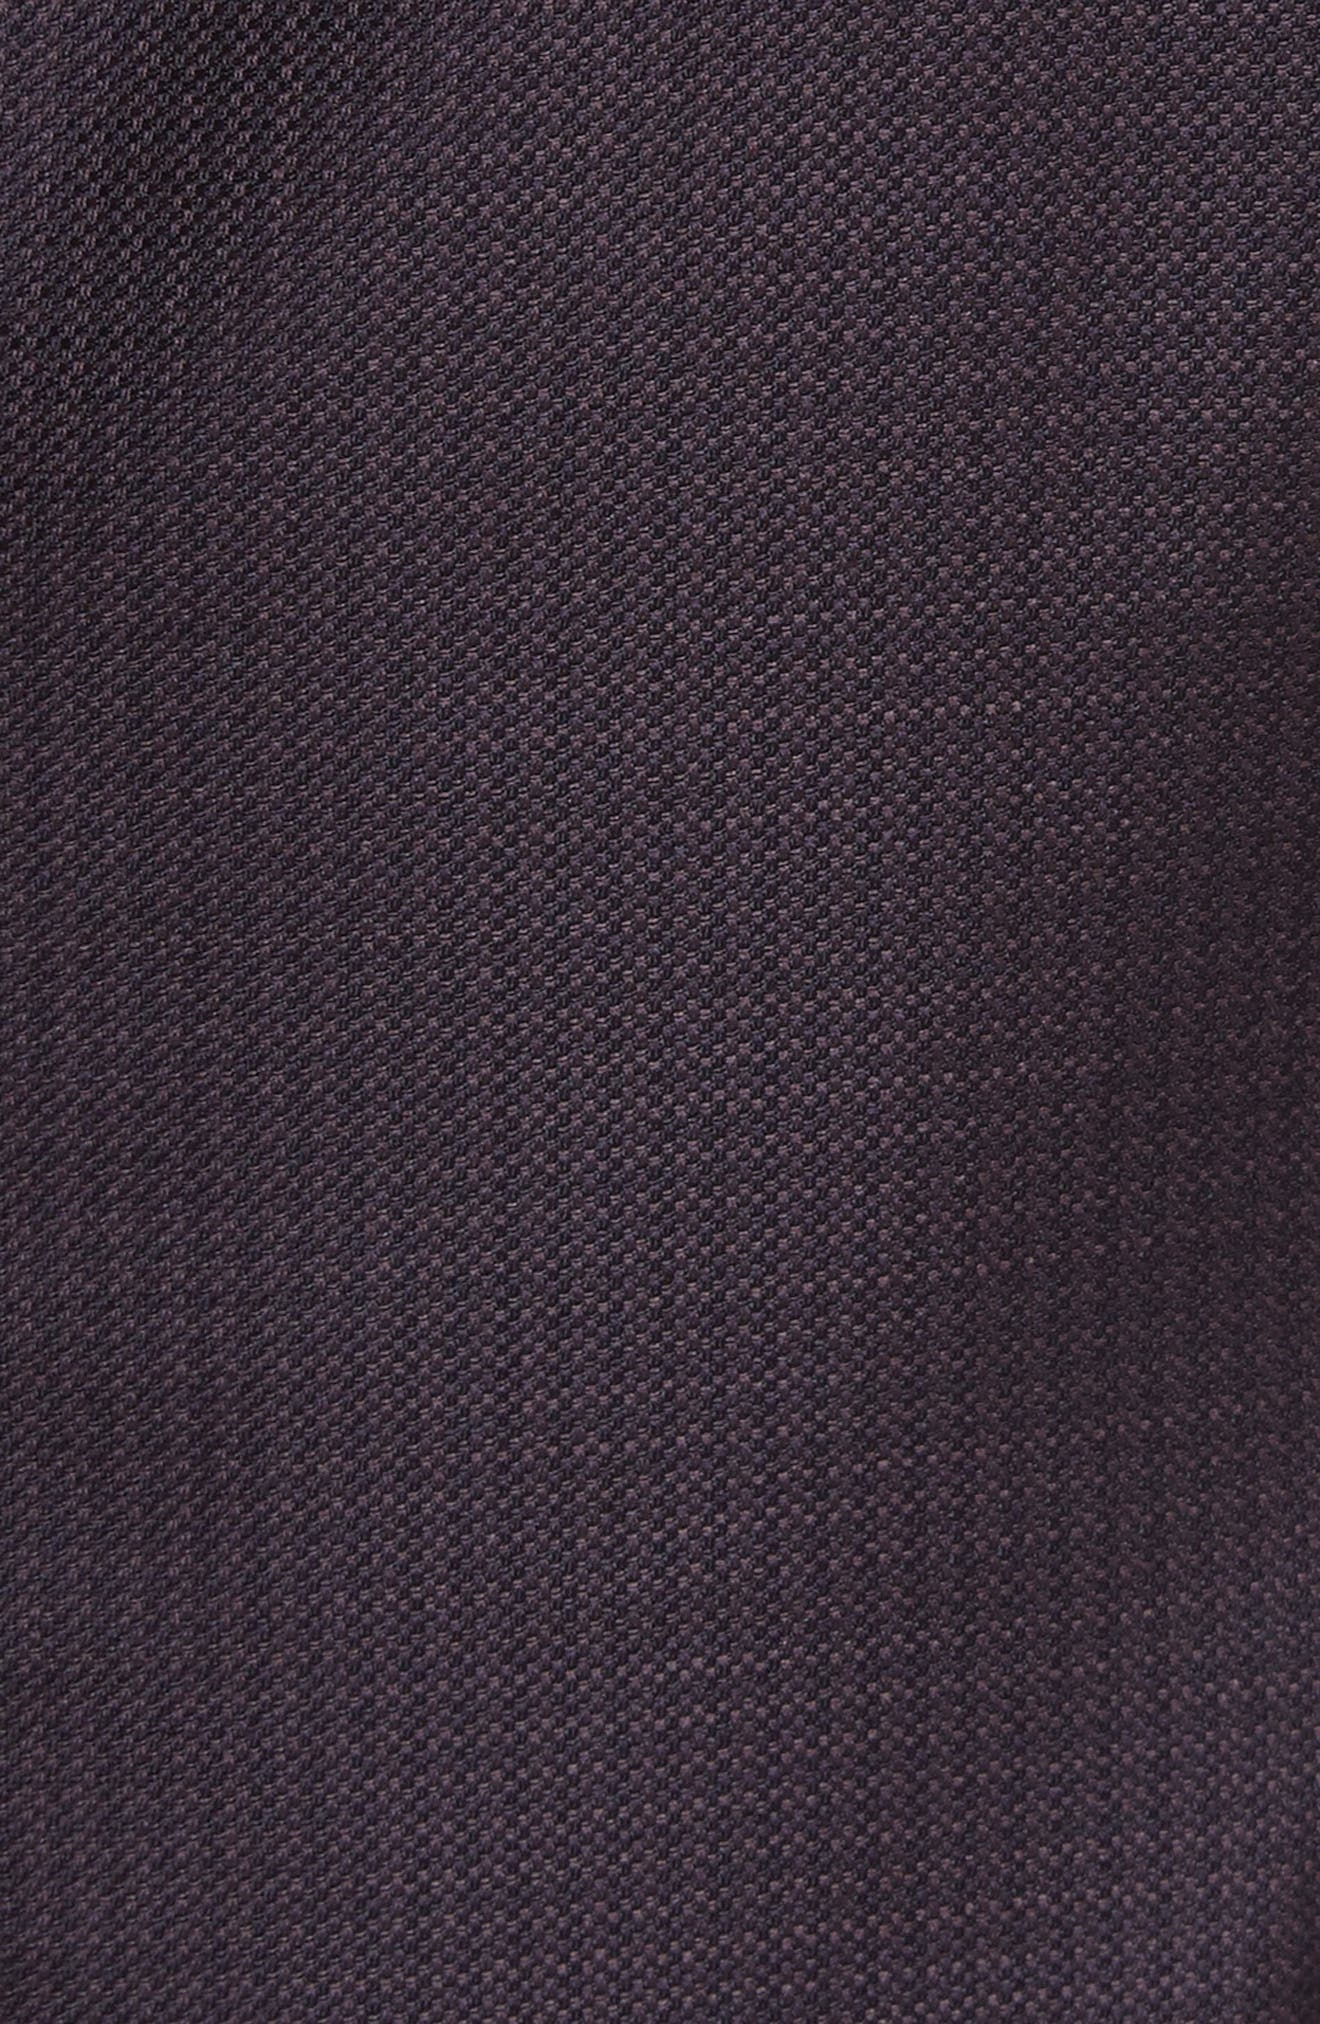 G-Line Trim Fit Houndstooth Wool Sport Coat,                             Alternate thumbnail 5, color,                             Solid Dark Red